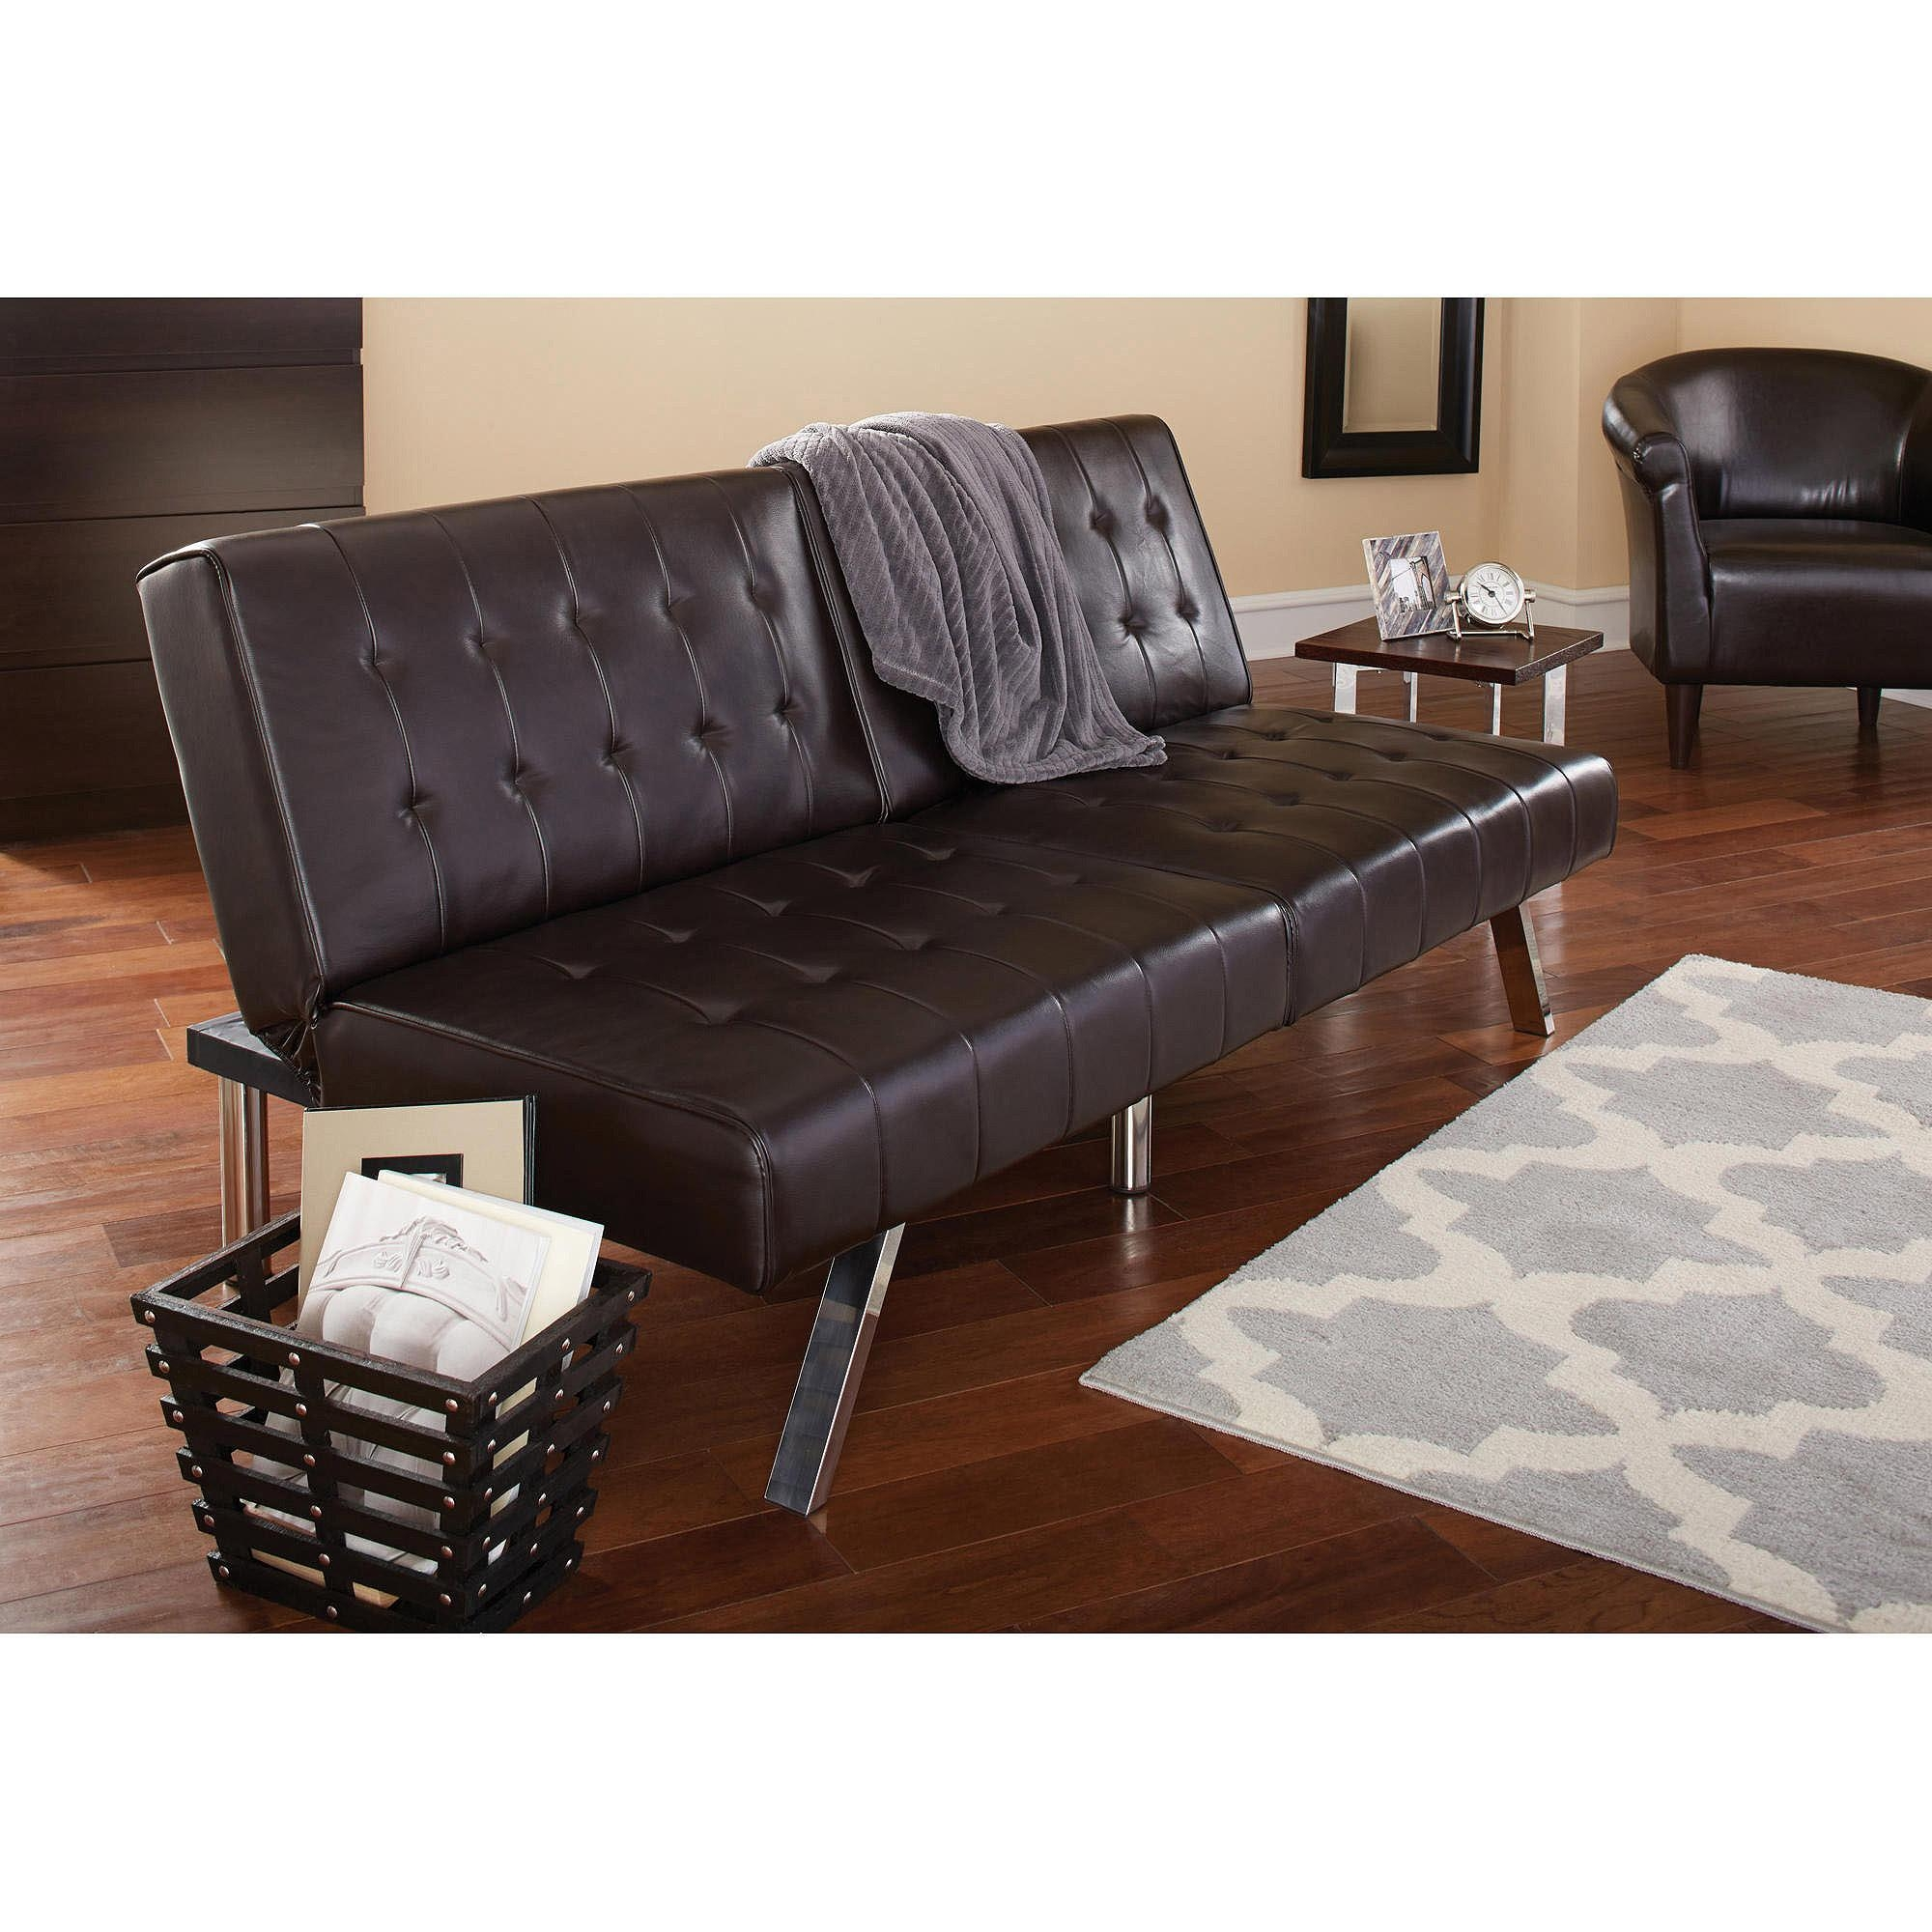 Barcelona Convertible Futon Sofa Bed And Lounger With Pillows Within Convertible Futon Sofa Beds (Image 2 of 20)